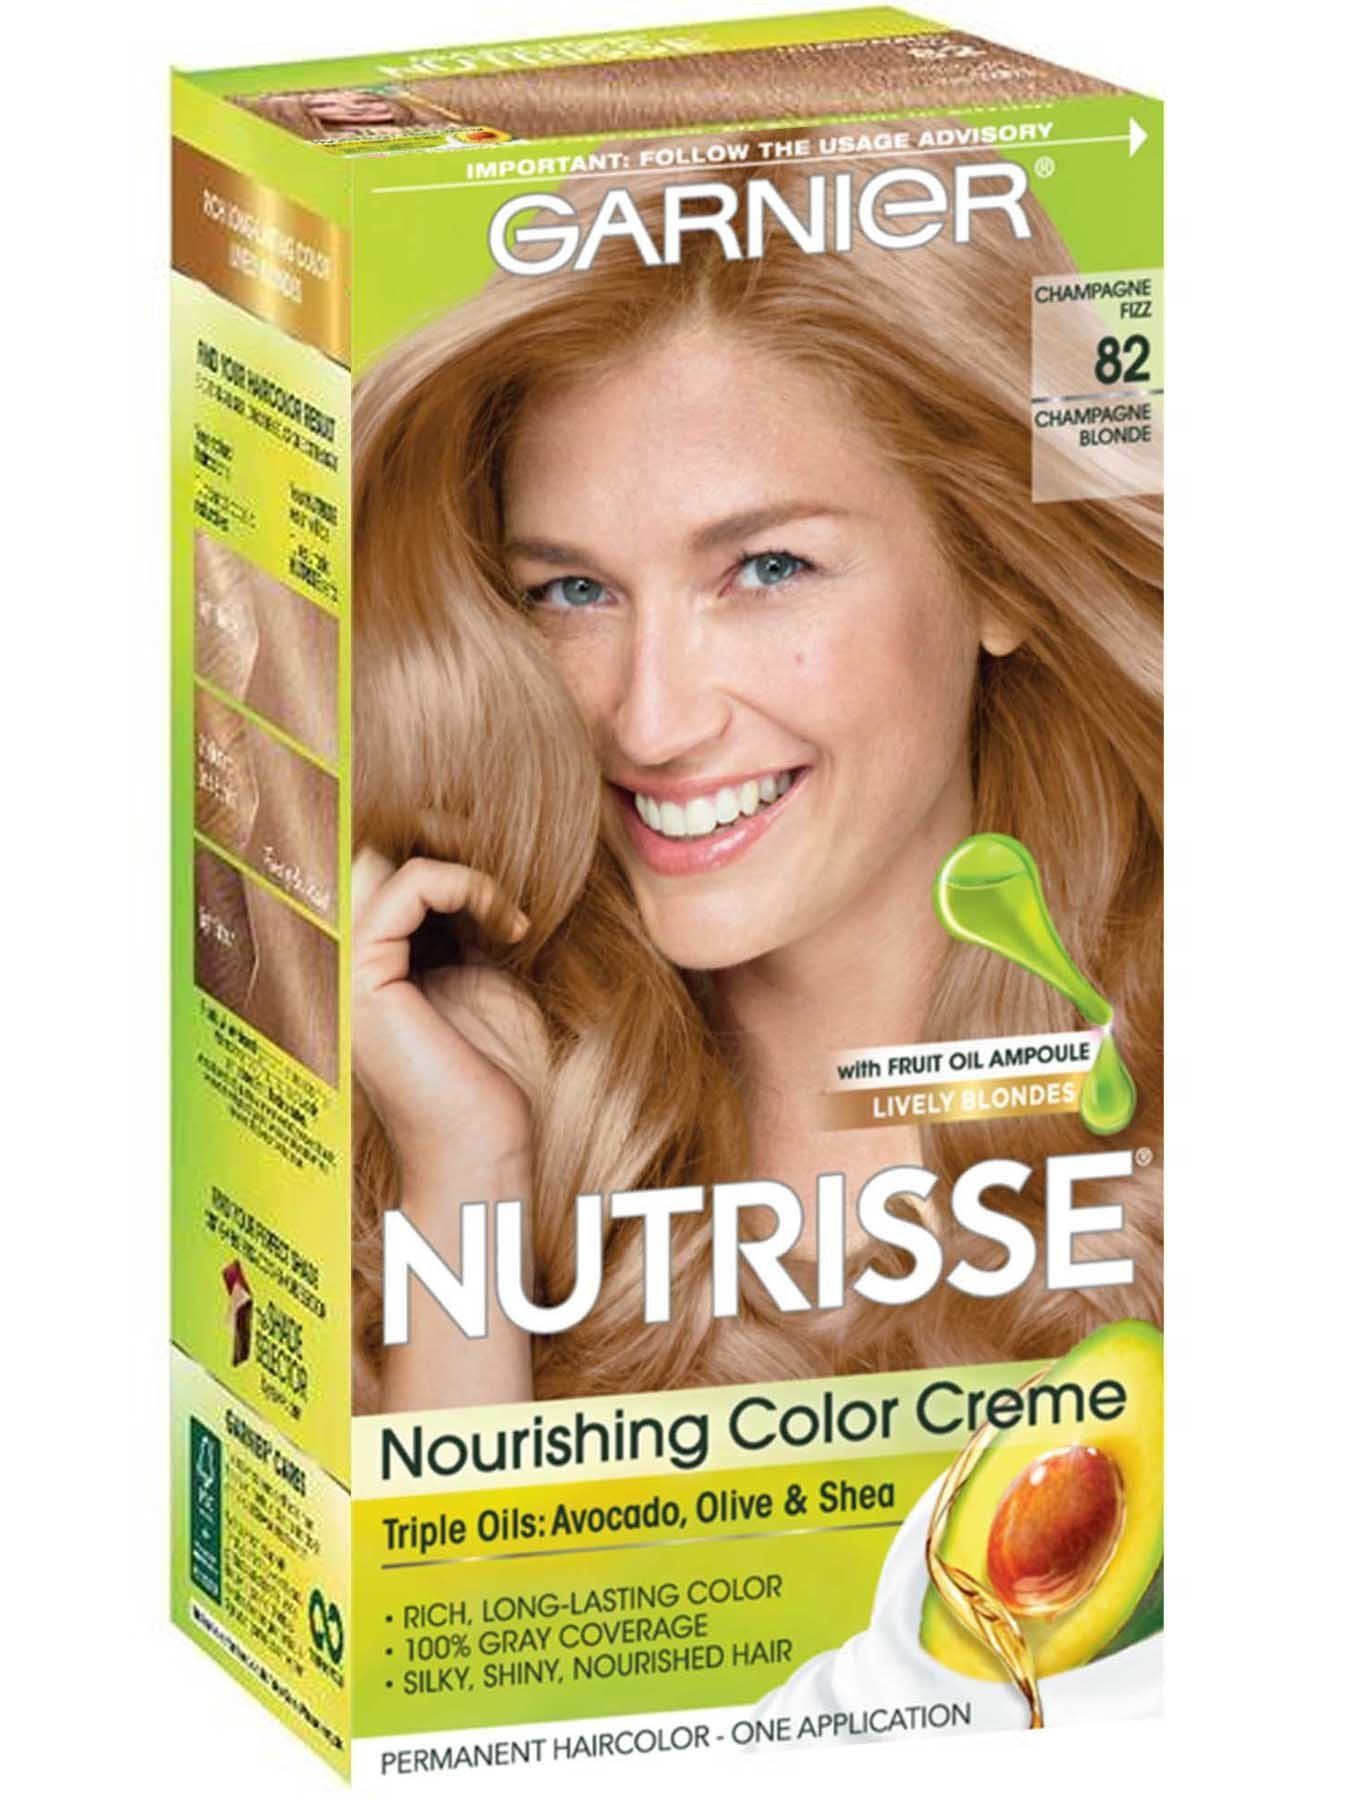 The Best Nutrisse Nourishing Color Creme Champagne Blonde 82 Pictures